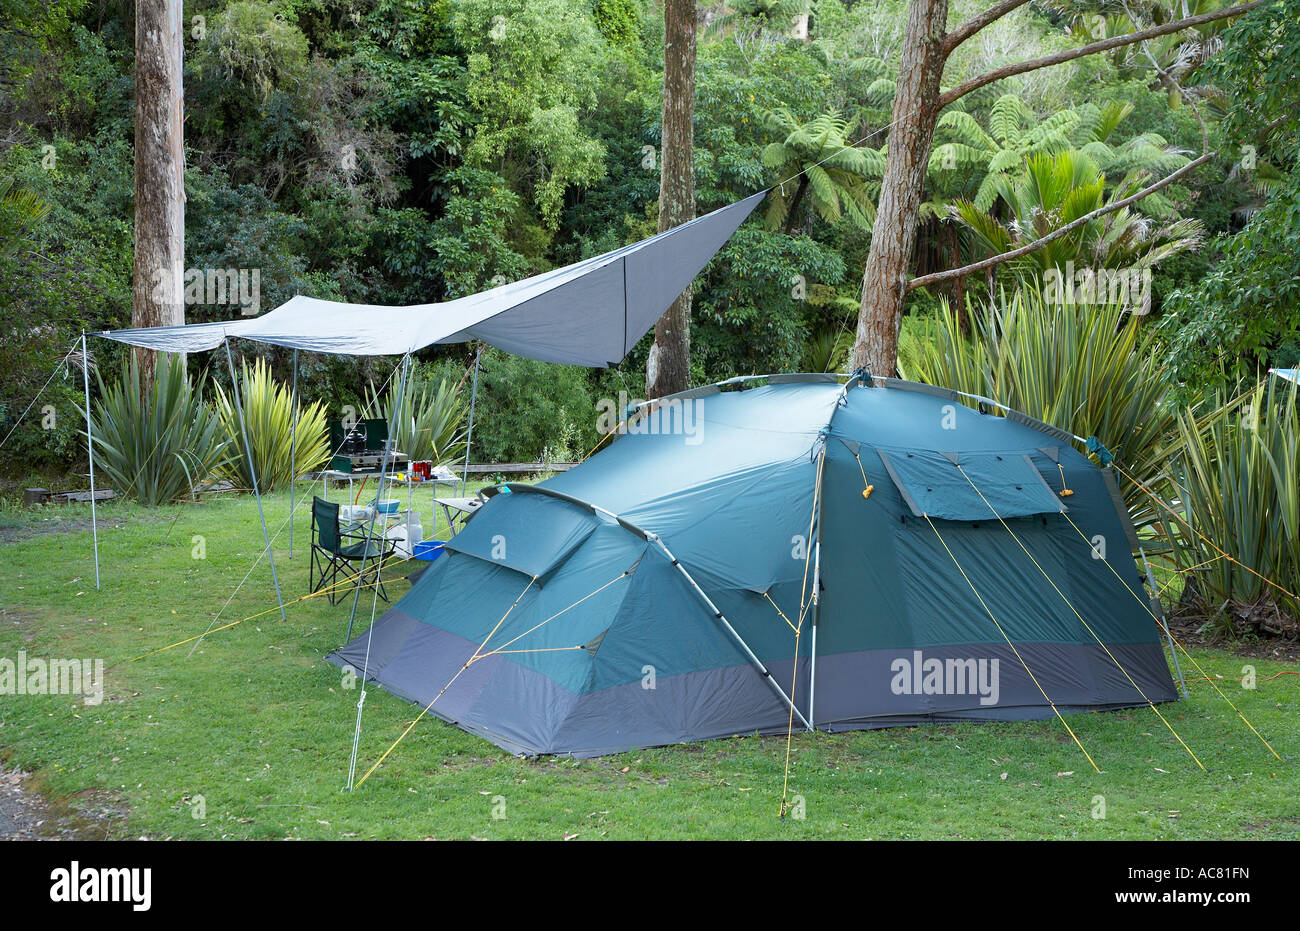 family c&ing in the bush with large family tent and tarp & family camping in the bush with large family tent and tarp Stock ...